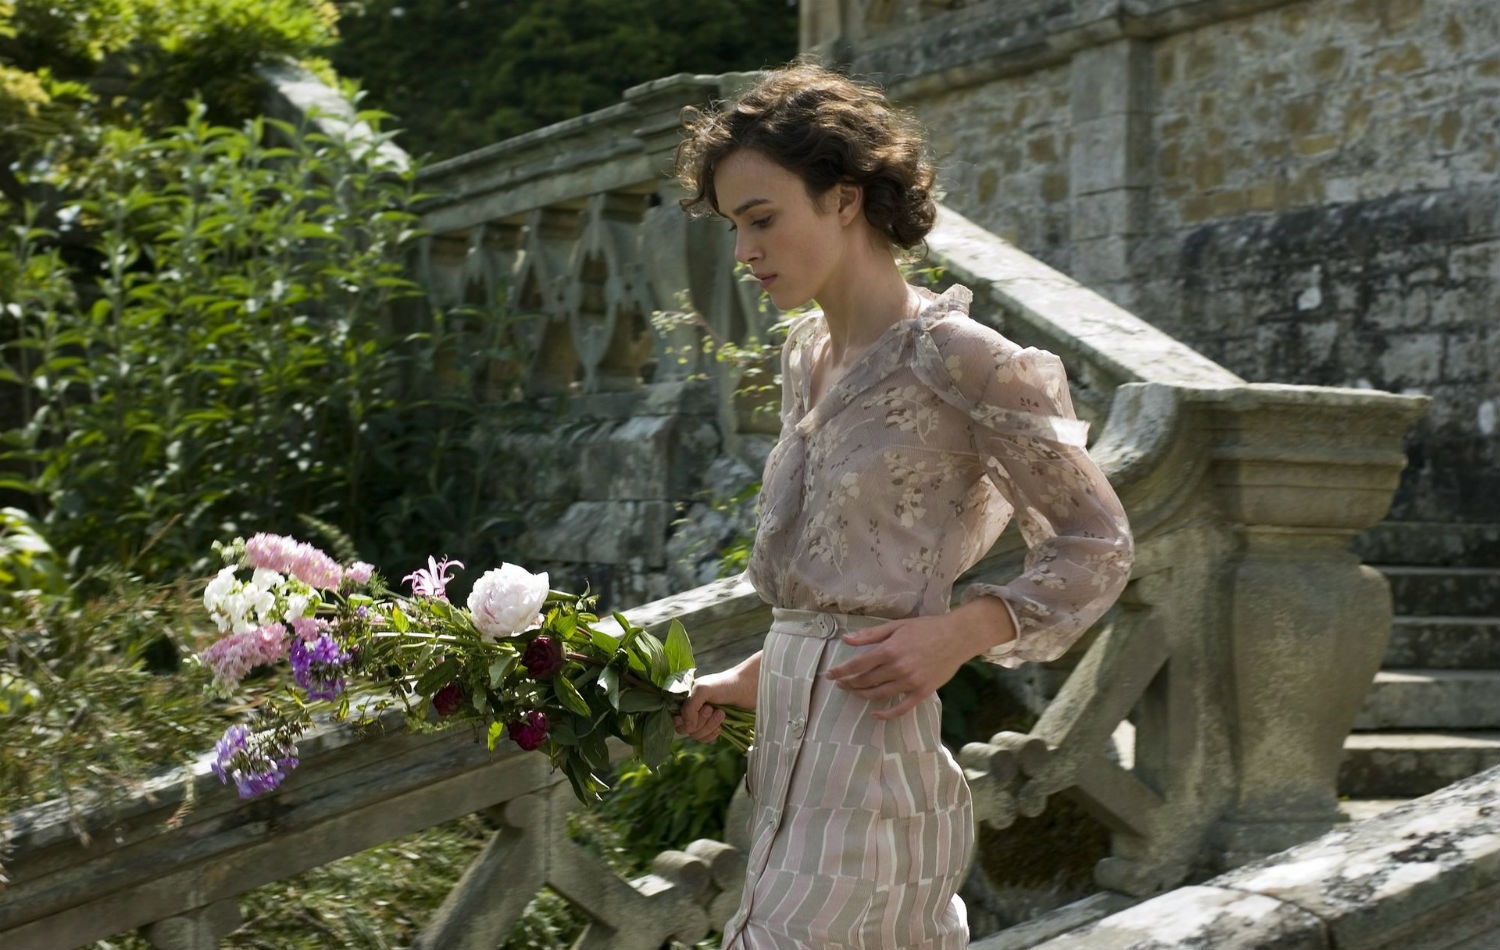 keira knightley atonement flowers england